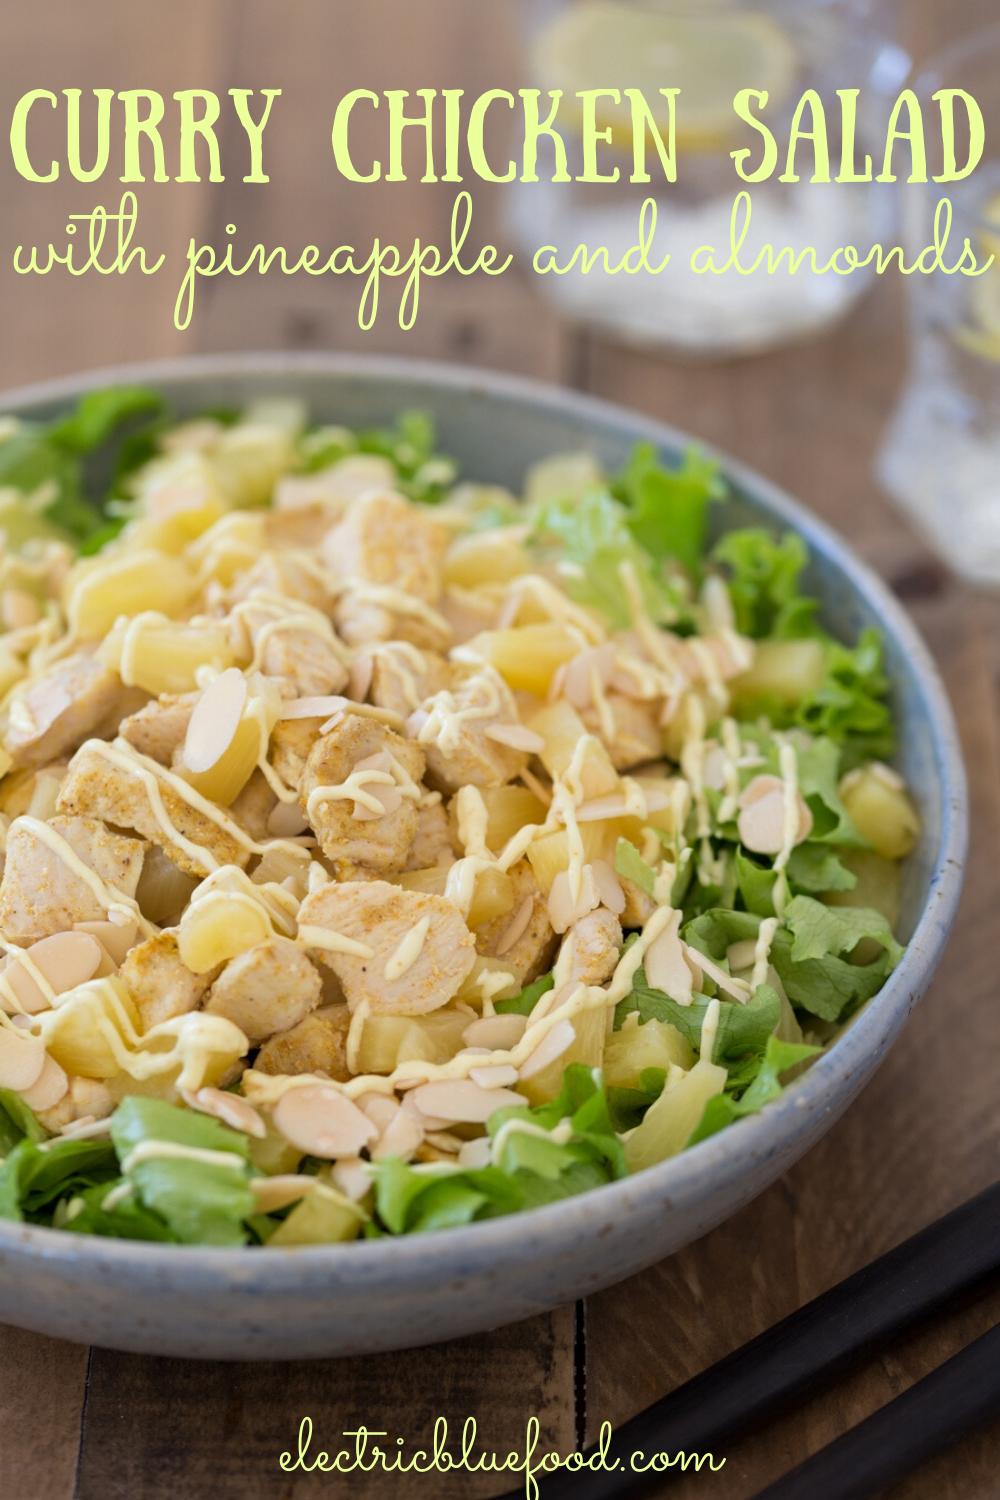 Enjoy summer outside eating with this fantastic chicken pineapple salad with curry mayo. Easily made with just a few ingredients, it will become your favourite summer salad.